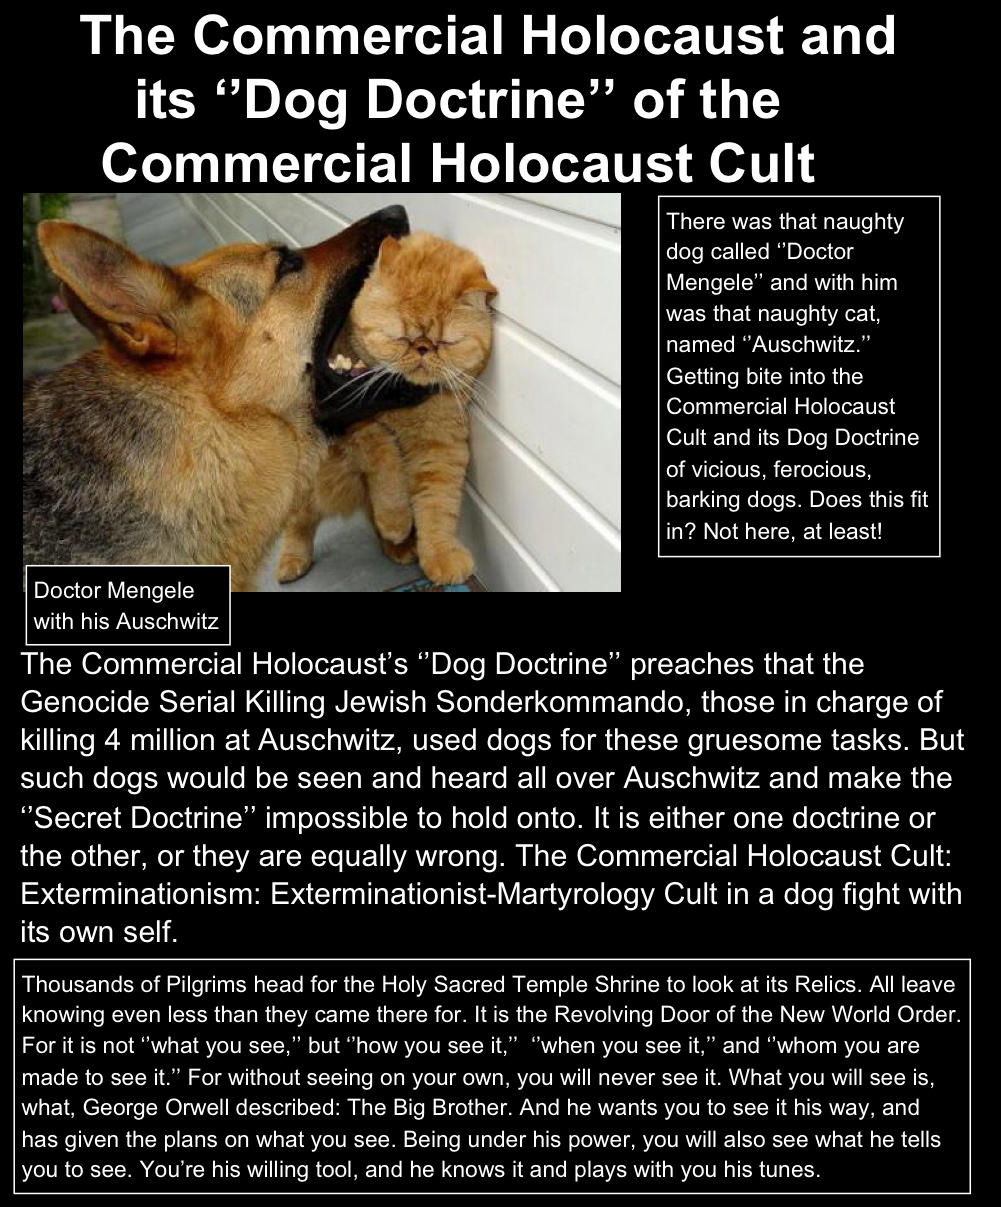 The Auschwitz 'Dog Doctrine', how reliable is it, or is it a